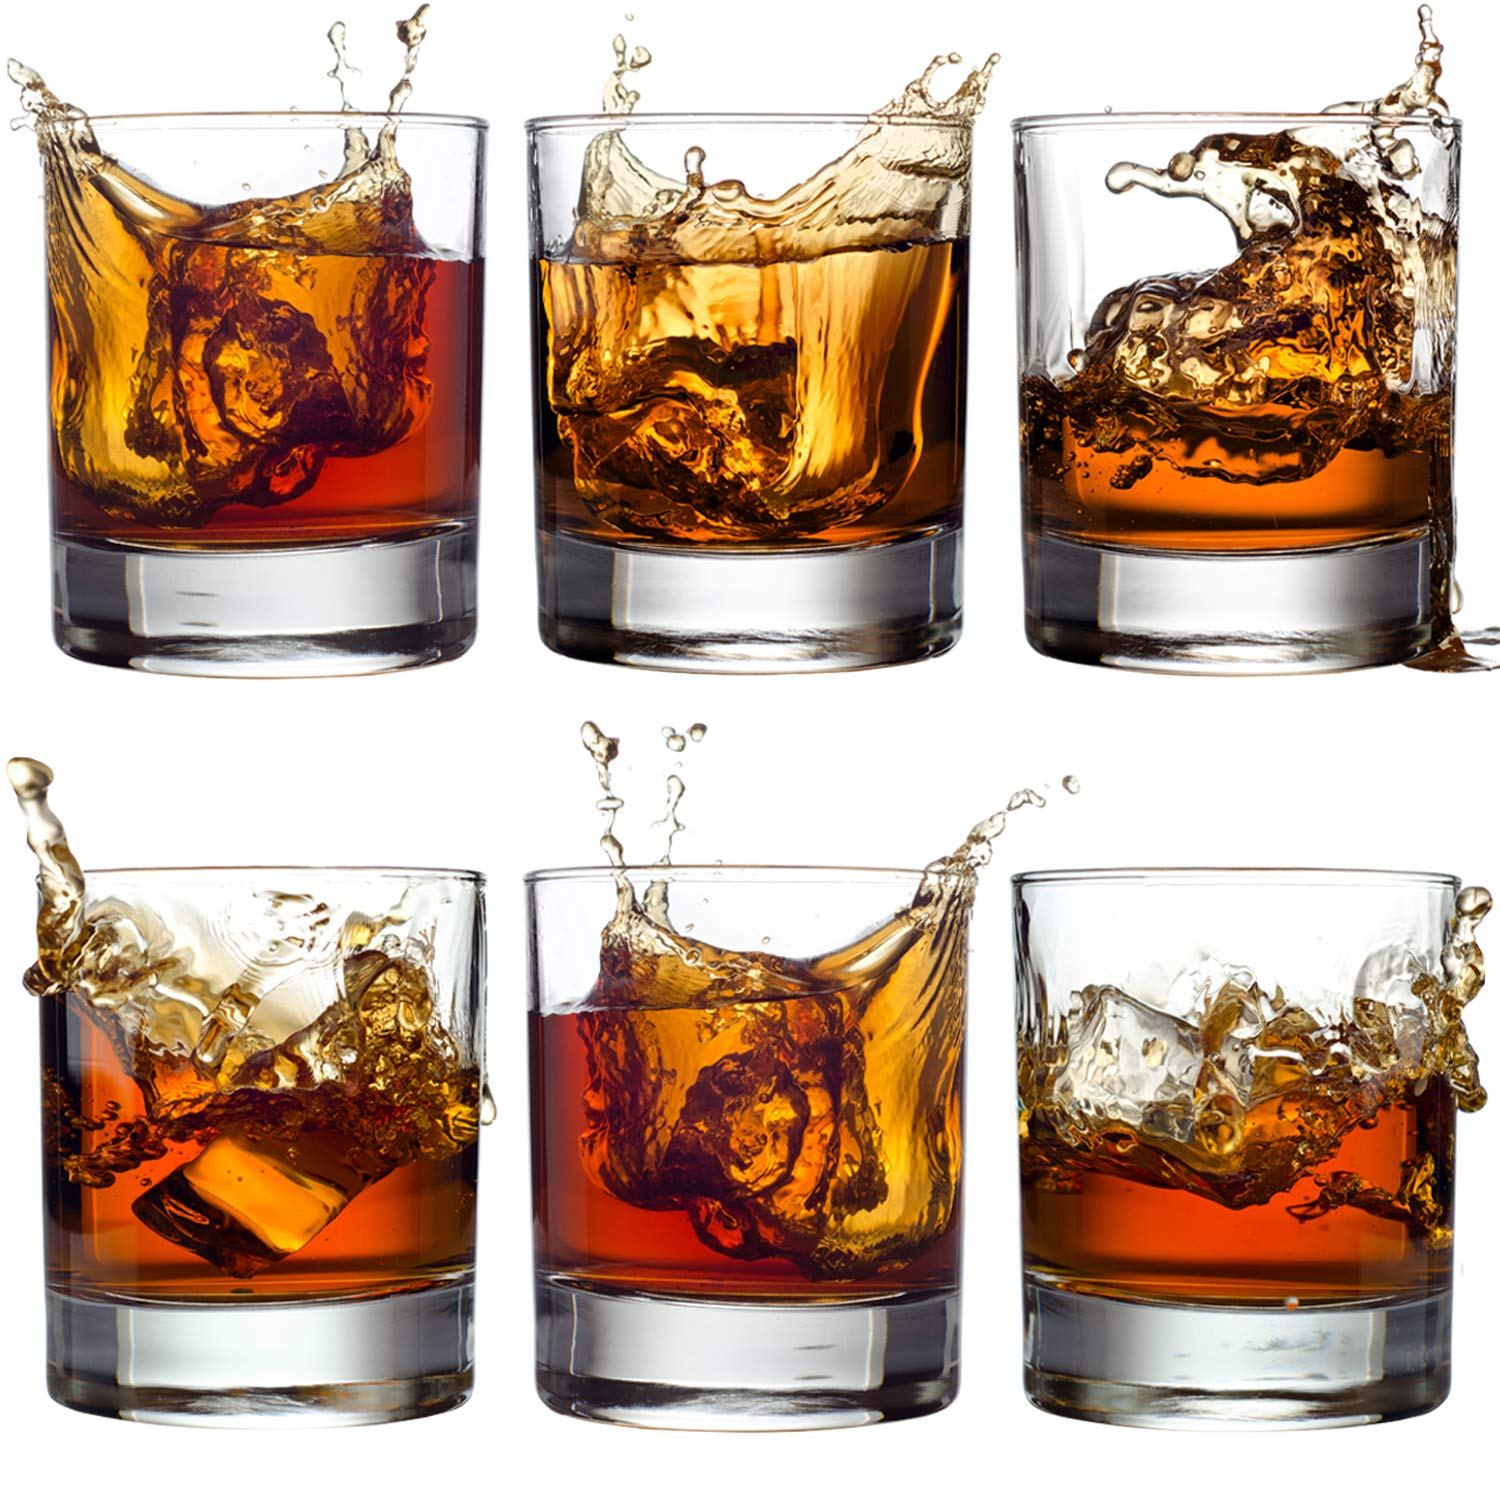 Old Fashioned Whiskey Glass Set, Premium Rocks Bourbon Glasses, 11 OZ / Set of 6, Lead-Free Crystal, Bar Drinking Glass Tumbler for Scotch, Cognac, Irish Whisky and Cocktails, Perfect Gift by Volarium